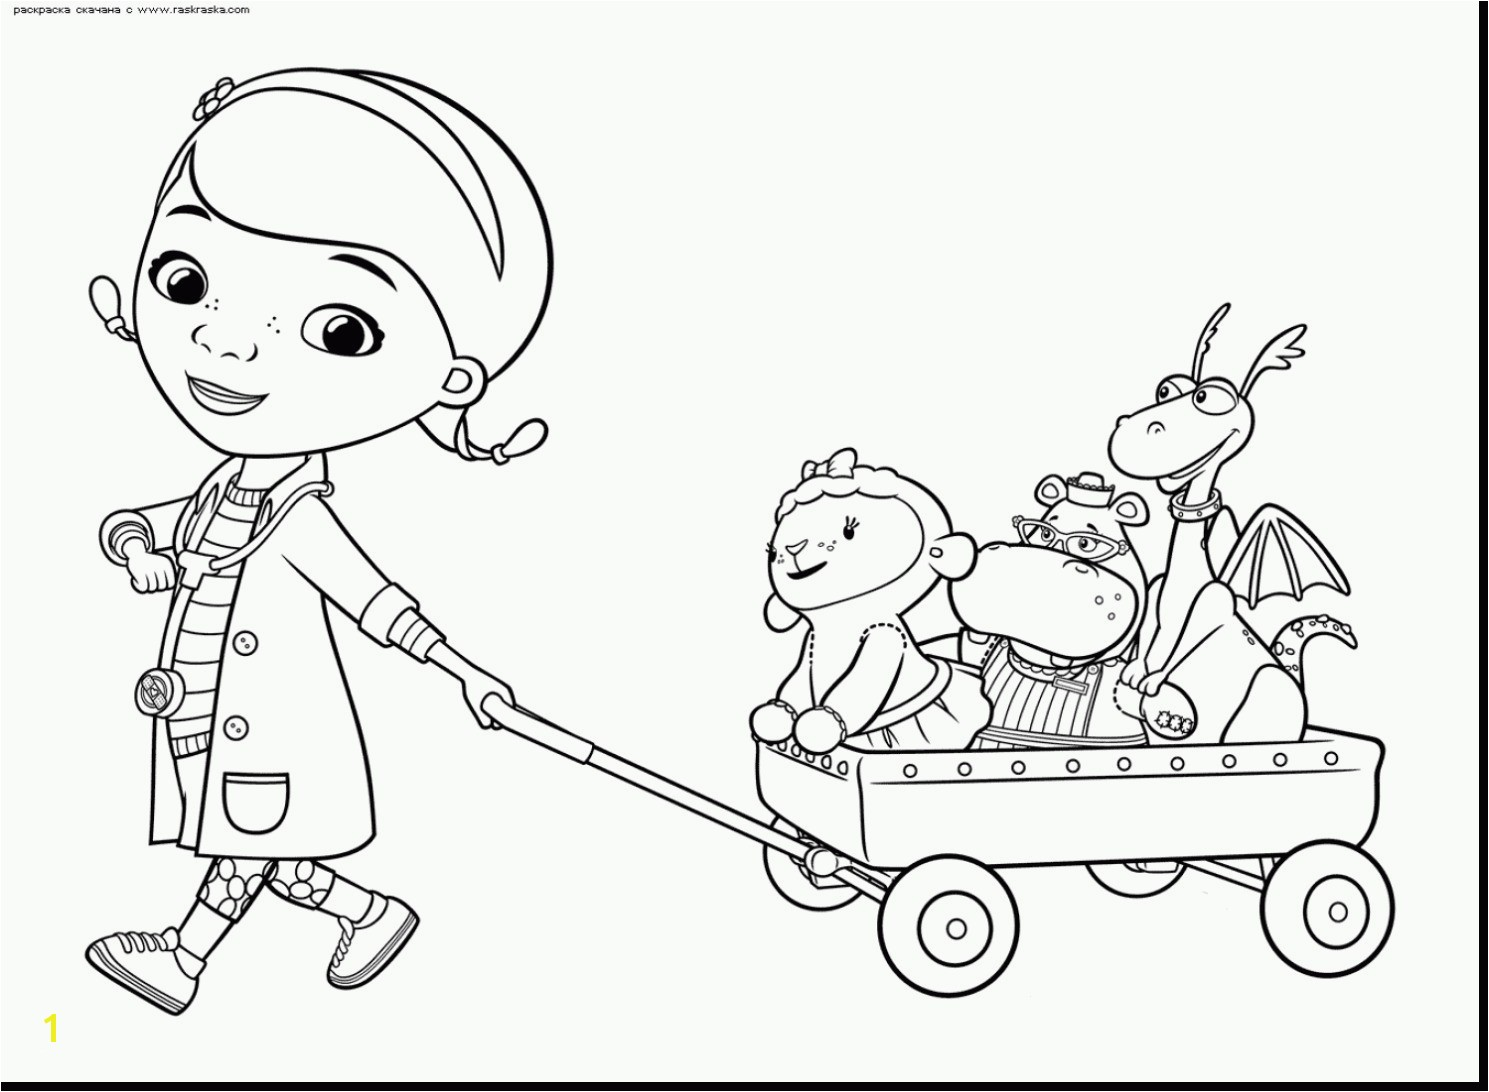 Doc Mcstuffins Coloring Pages Doc Mcstuffins Coloring Pages Heathermarxgallery